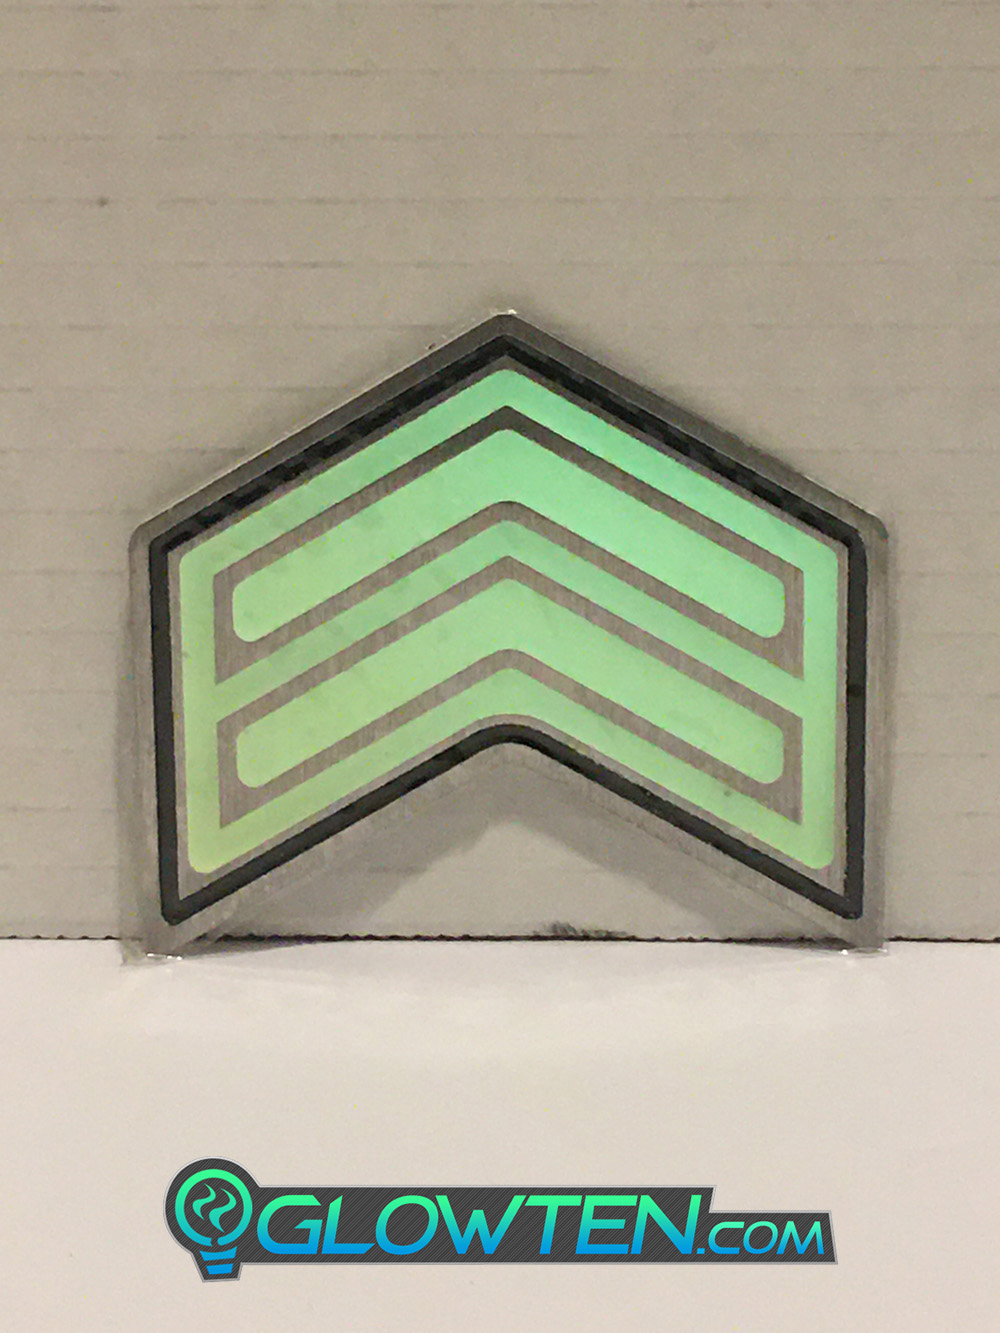 GLOWTEN.com - DOUBLE ARROWS Glow in the Dark Stairs Guide Directional Safety See Clearly At Night Metal Badge Sign glow pigments picture photo cap preview pic 1